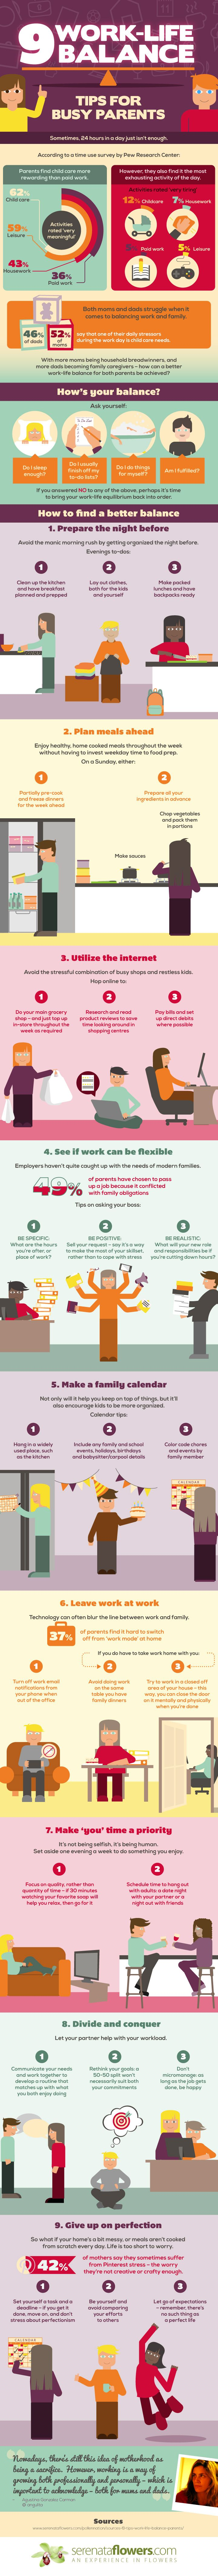 9 Work Life Balance Tips For Busy Working Parents (Infographic)